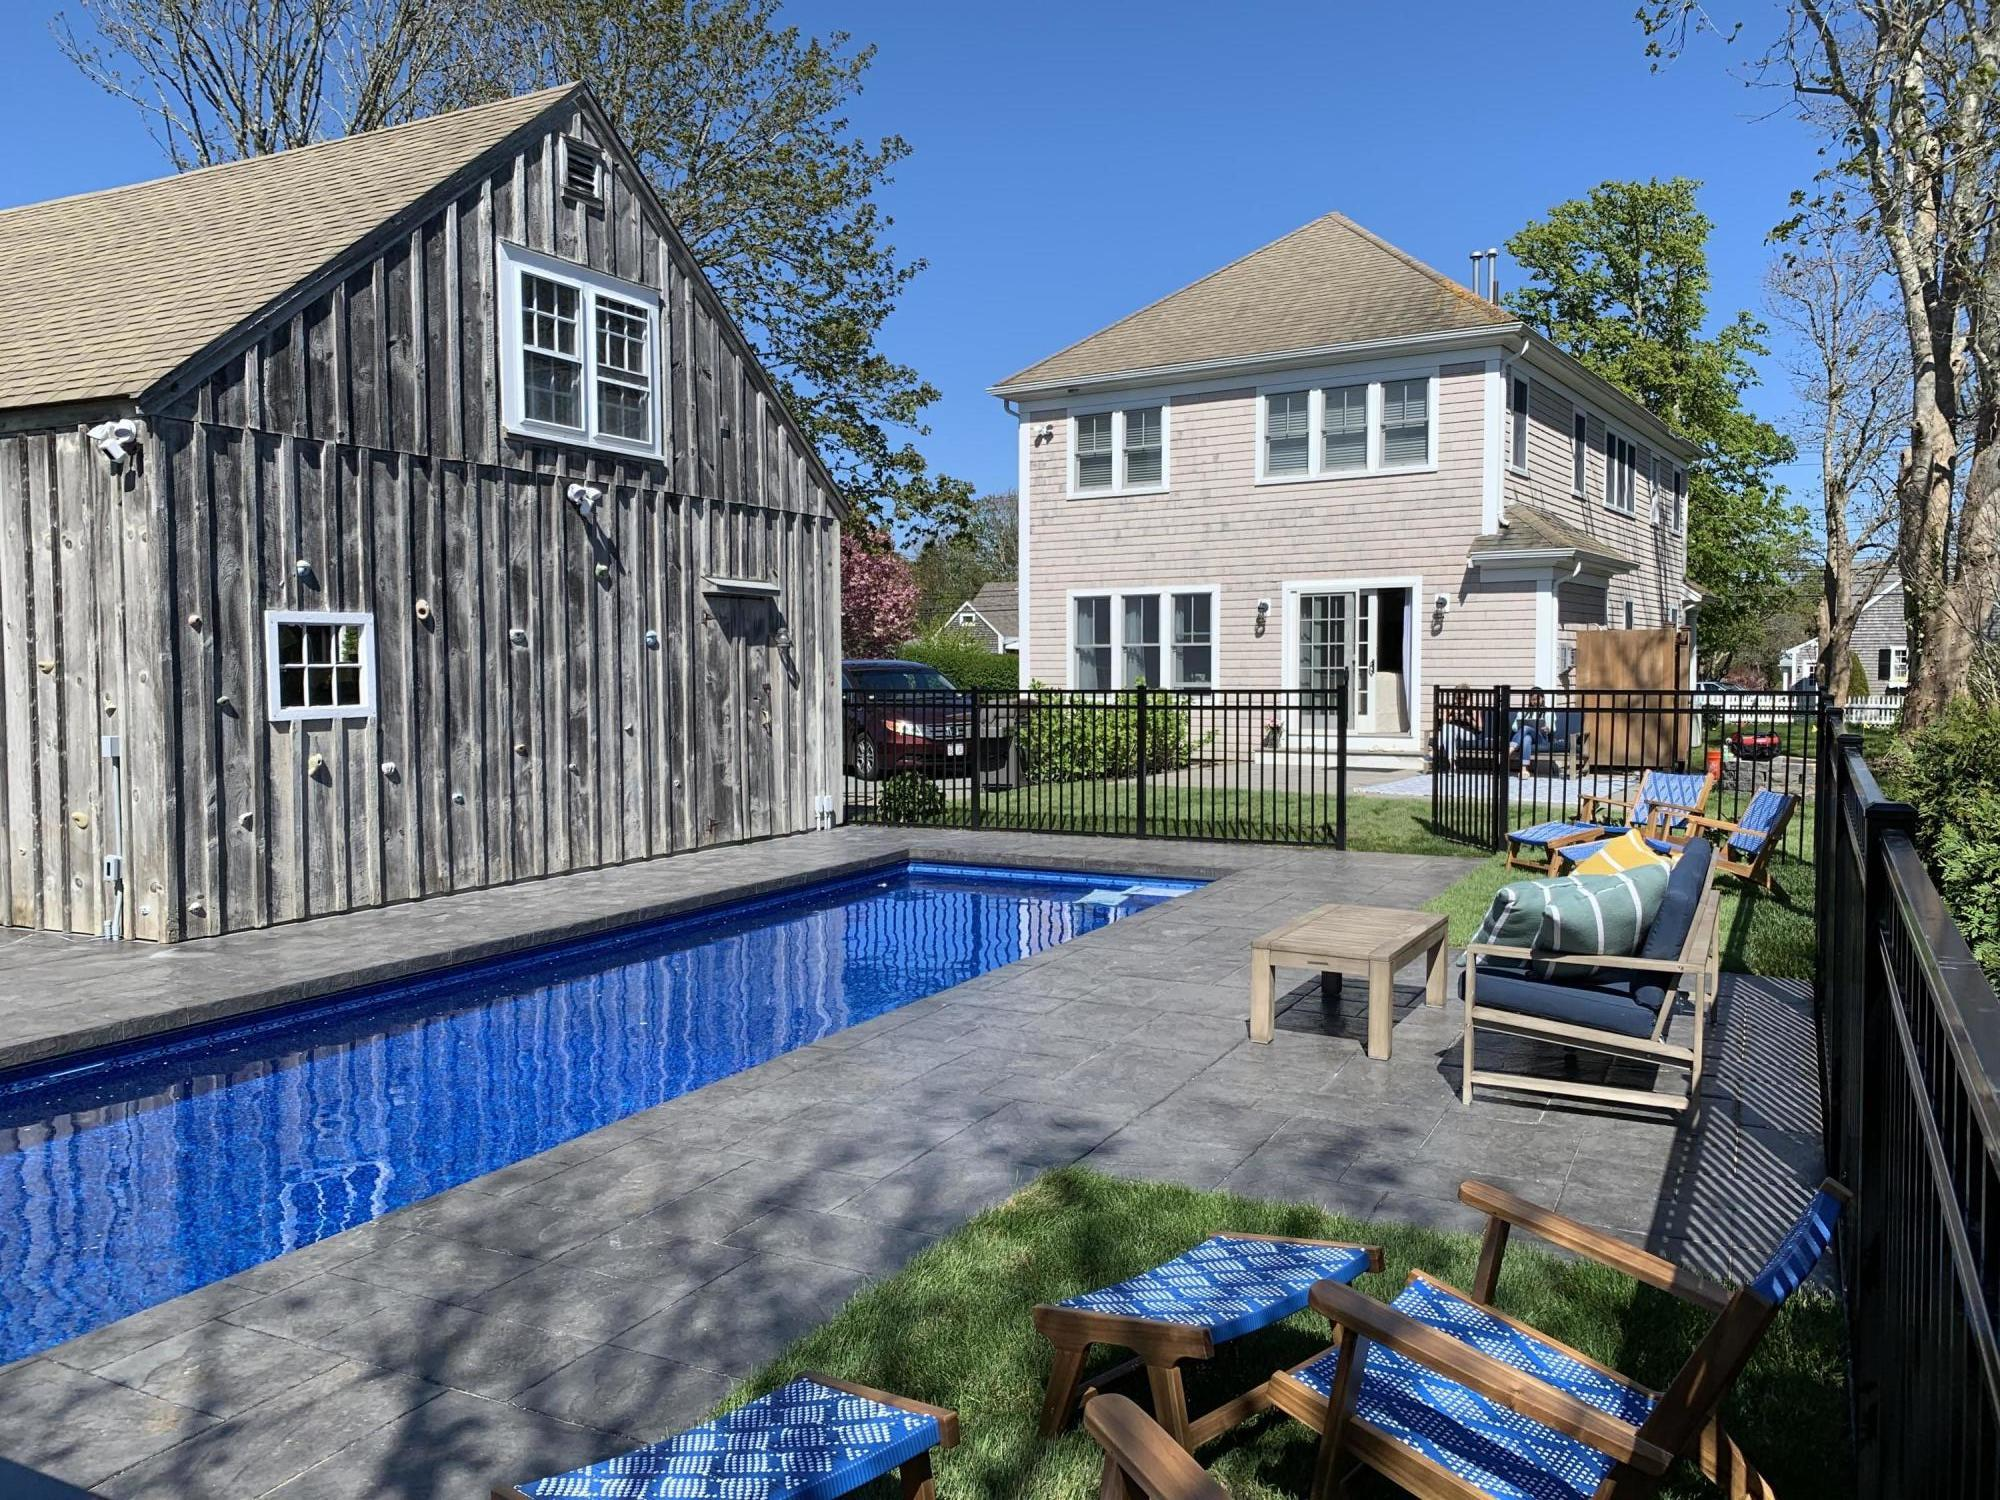 click to view more details 81 Hitching Post Road, Chatham, MA 02633